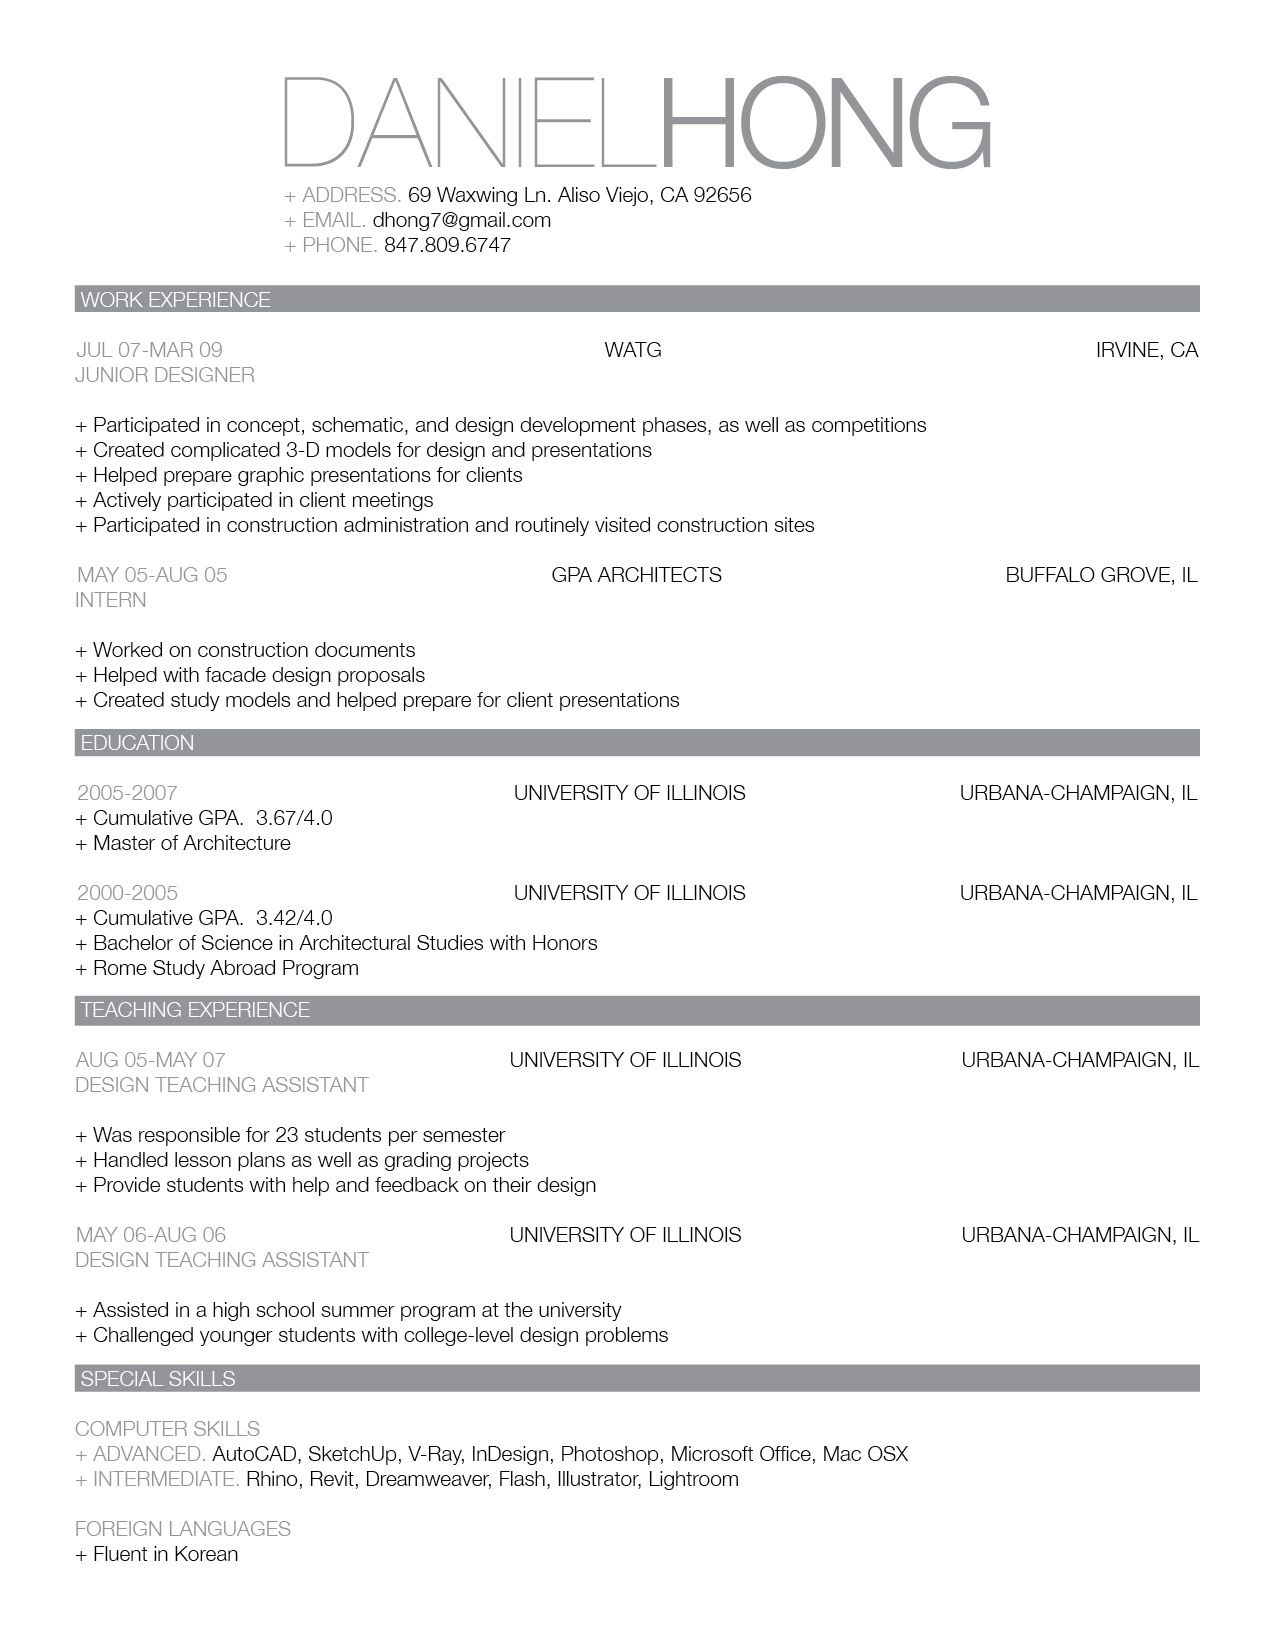 Simple Sample Resume Updated Cv And Work Sample  Professional Resume Sample Resume